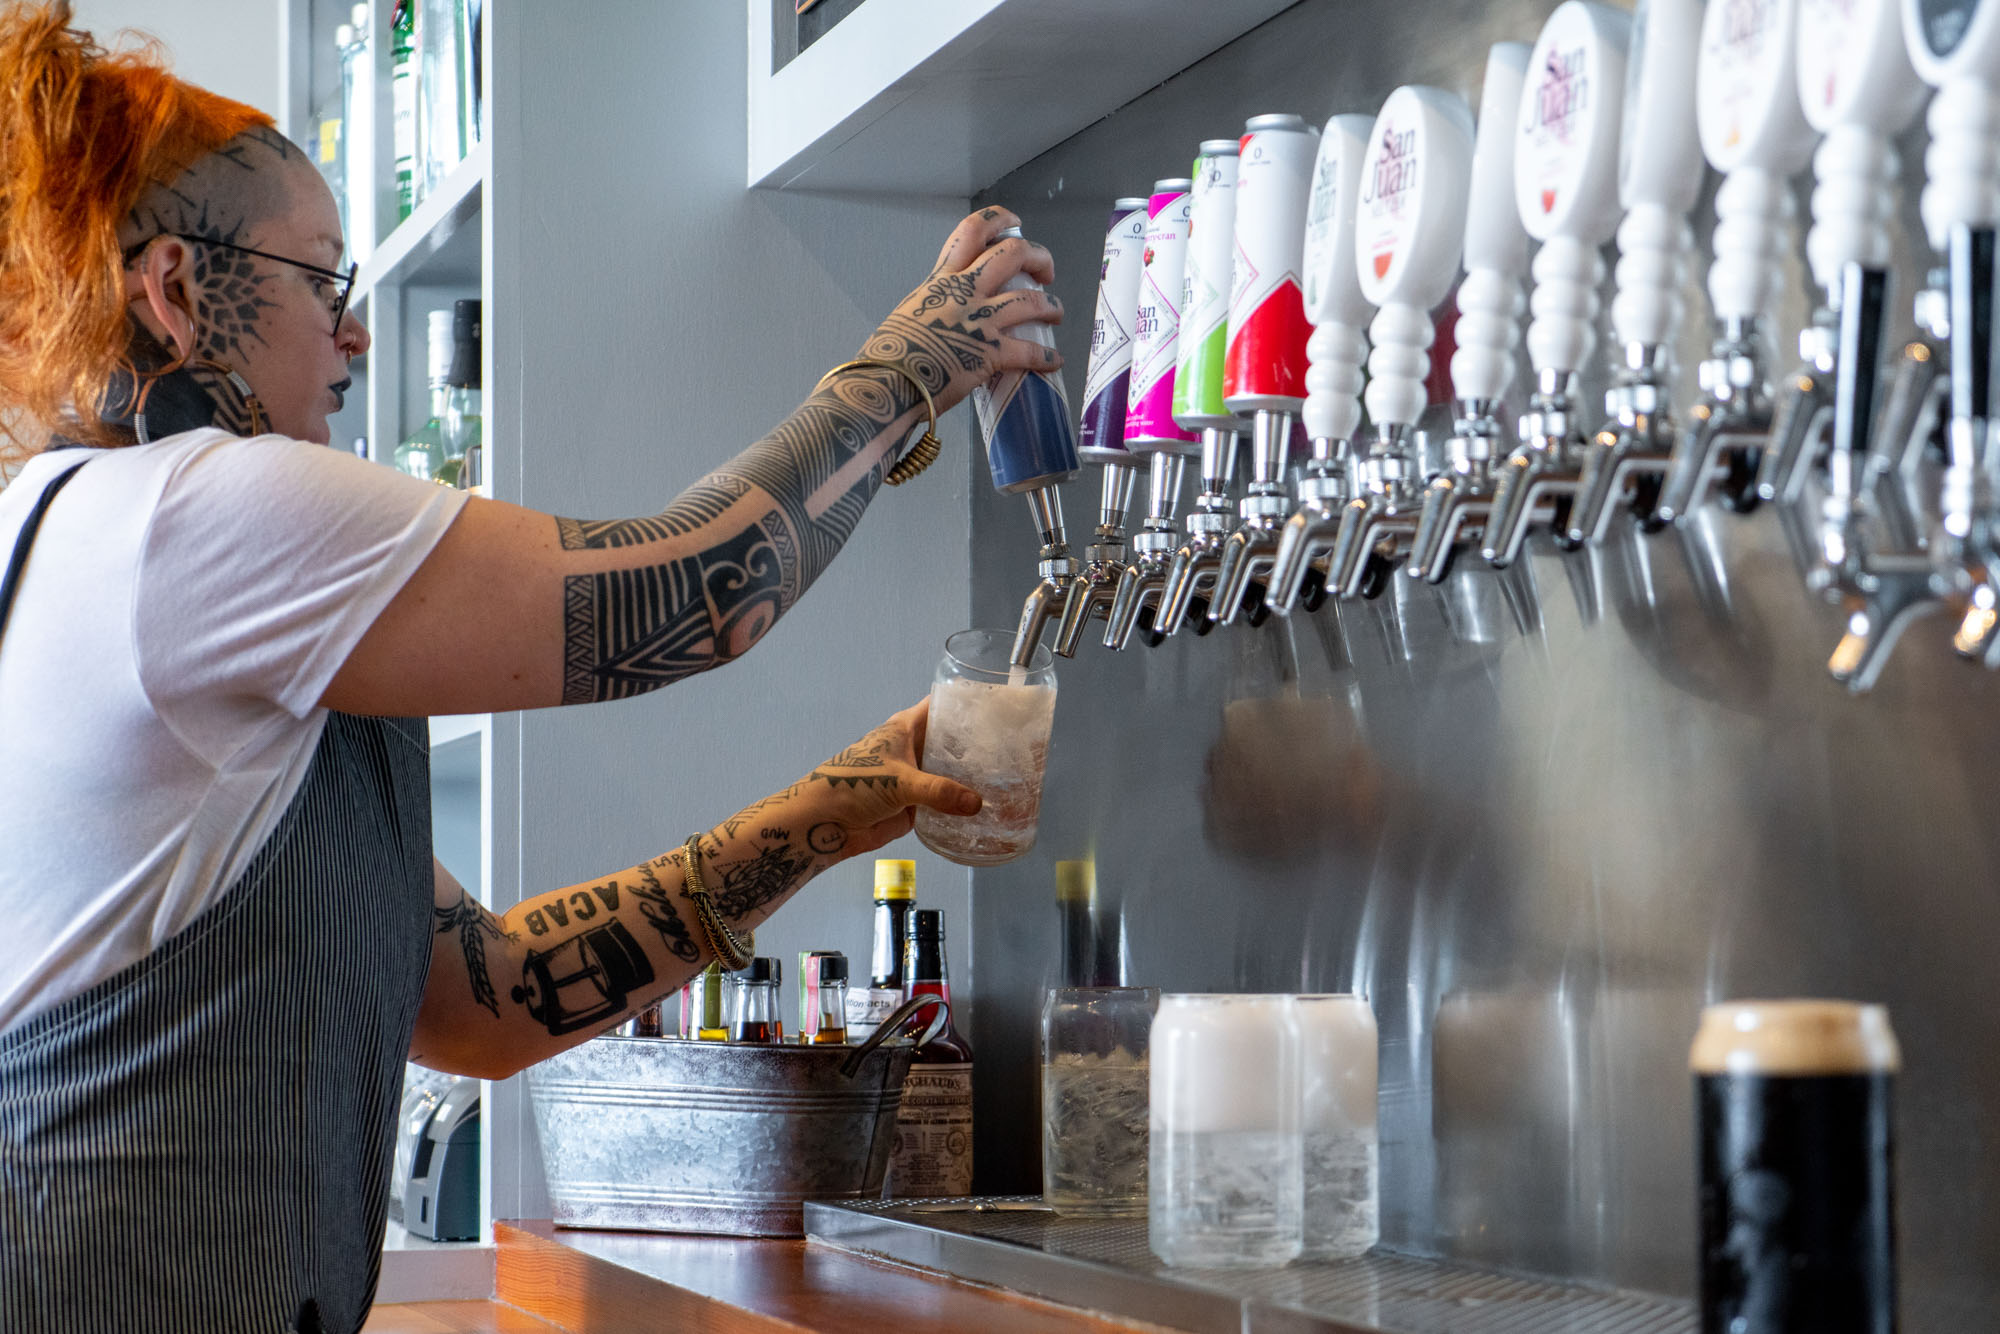 A woman with tattoos pouring cups of hard seltzer from many taps